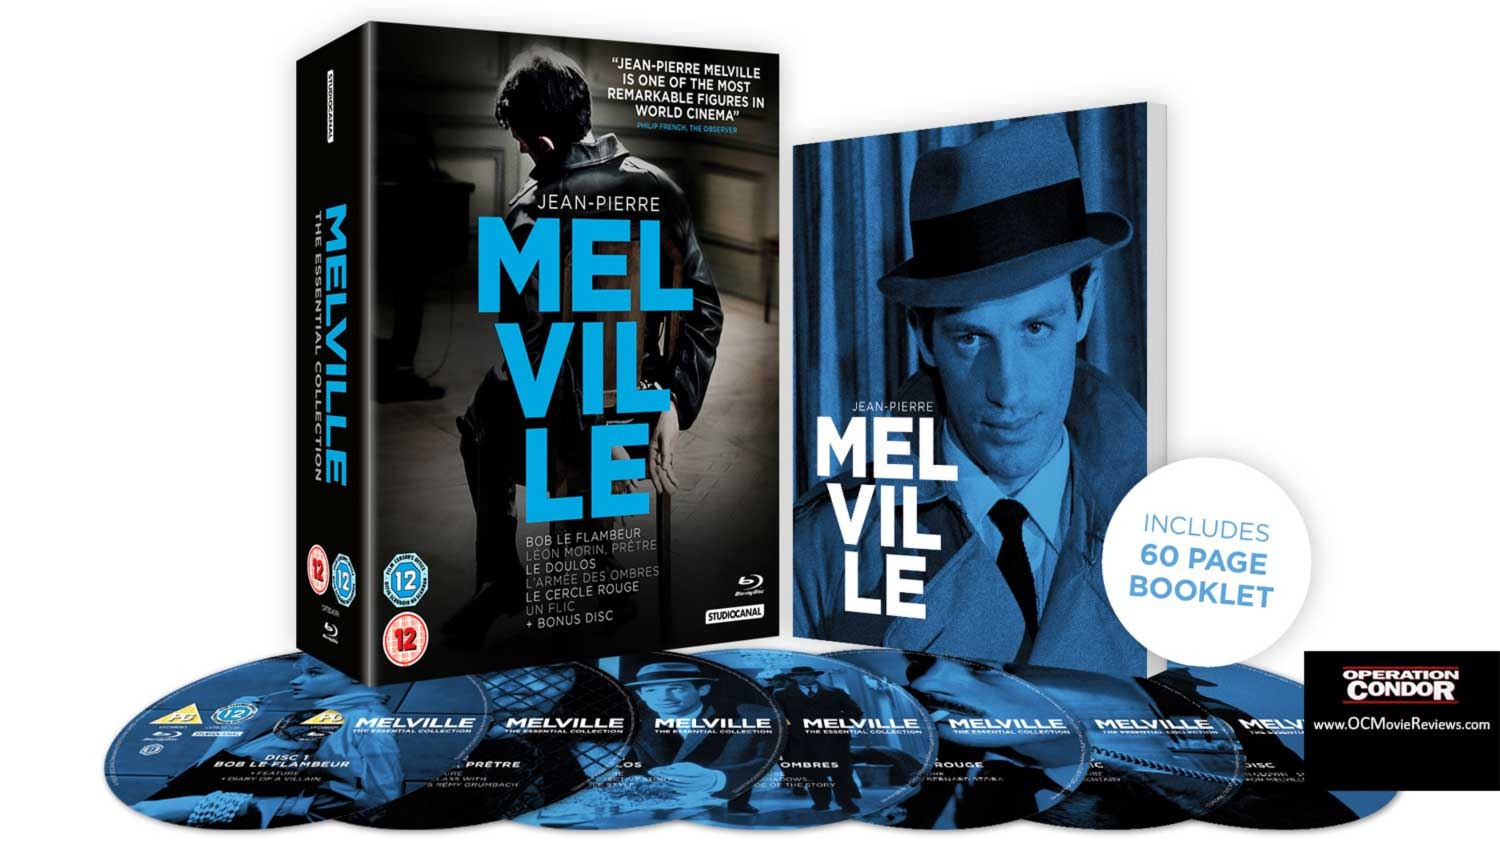 Leon Morin, Priest Review – Part II Of Our Jean-Pierre Melville Collection - OC Movie Reviews - Movie Reviews, Movie News, Documentary Reviews, Short Films, Short Film Reviews, Trailers, Movie Trailers, Interviews, film reviews, film news, hollywood, indie films, documentaries